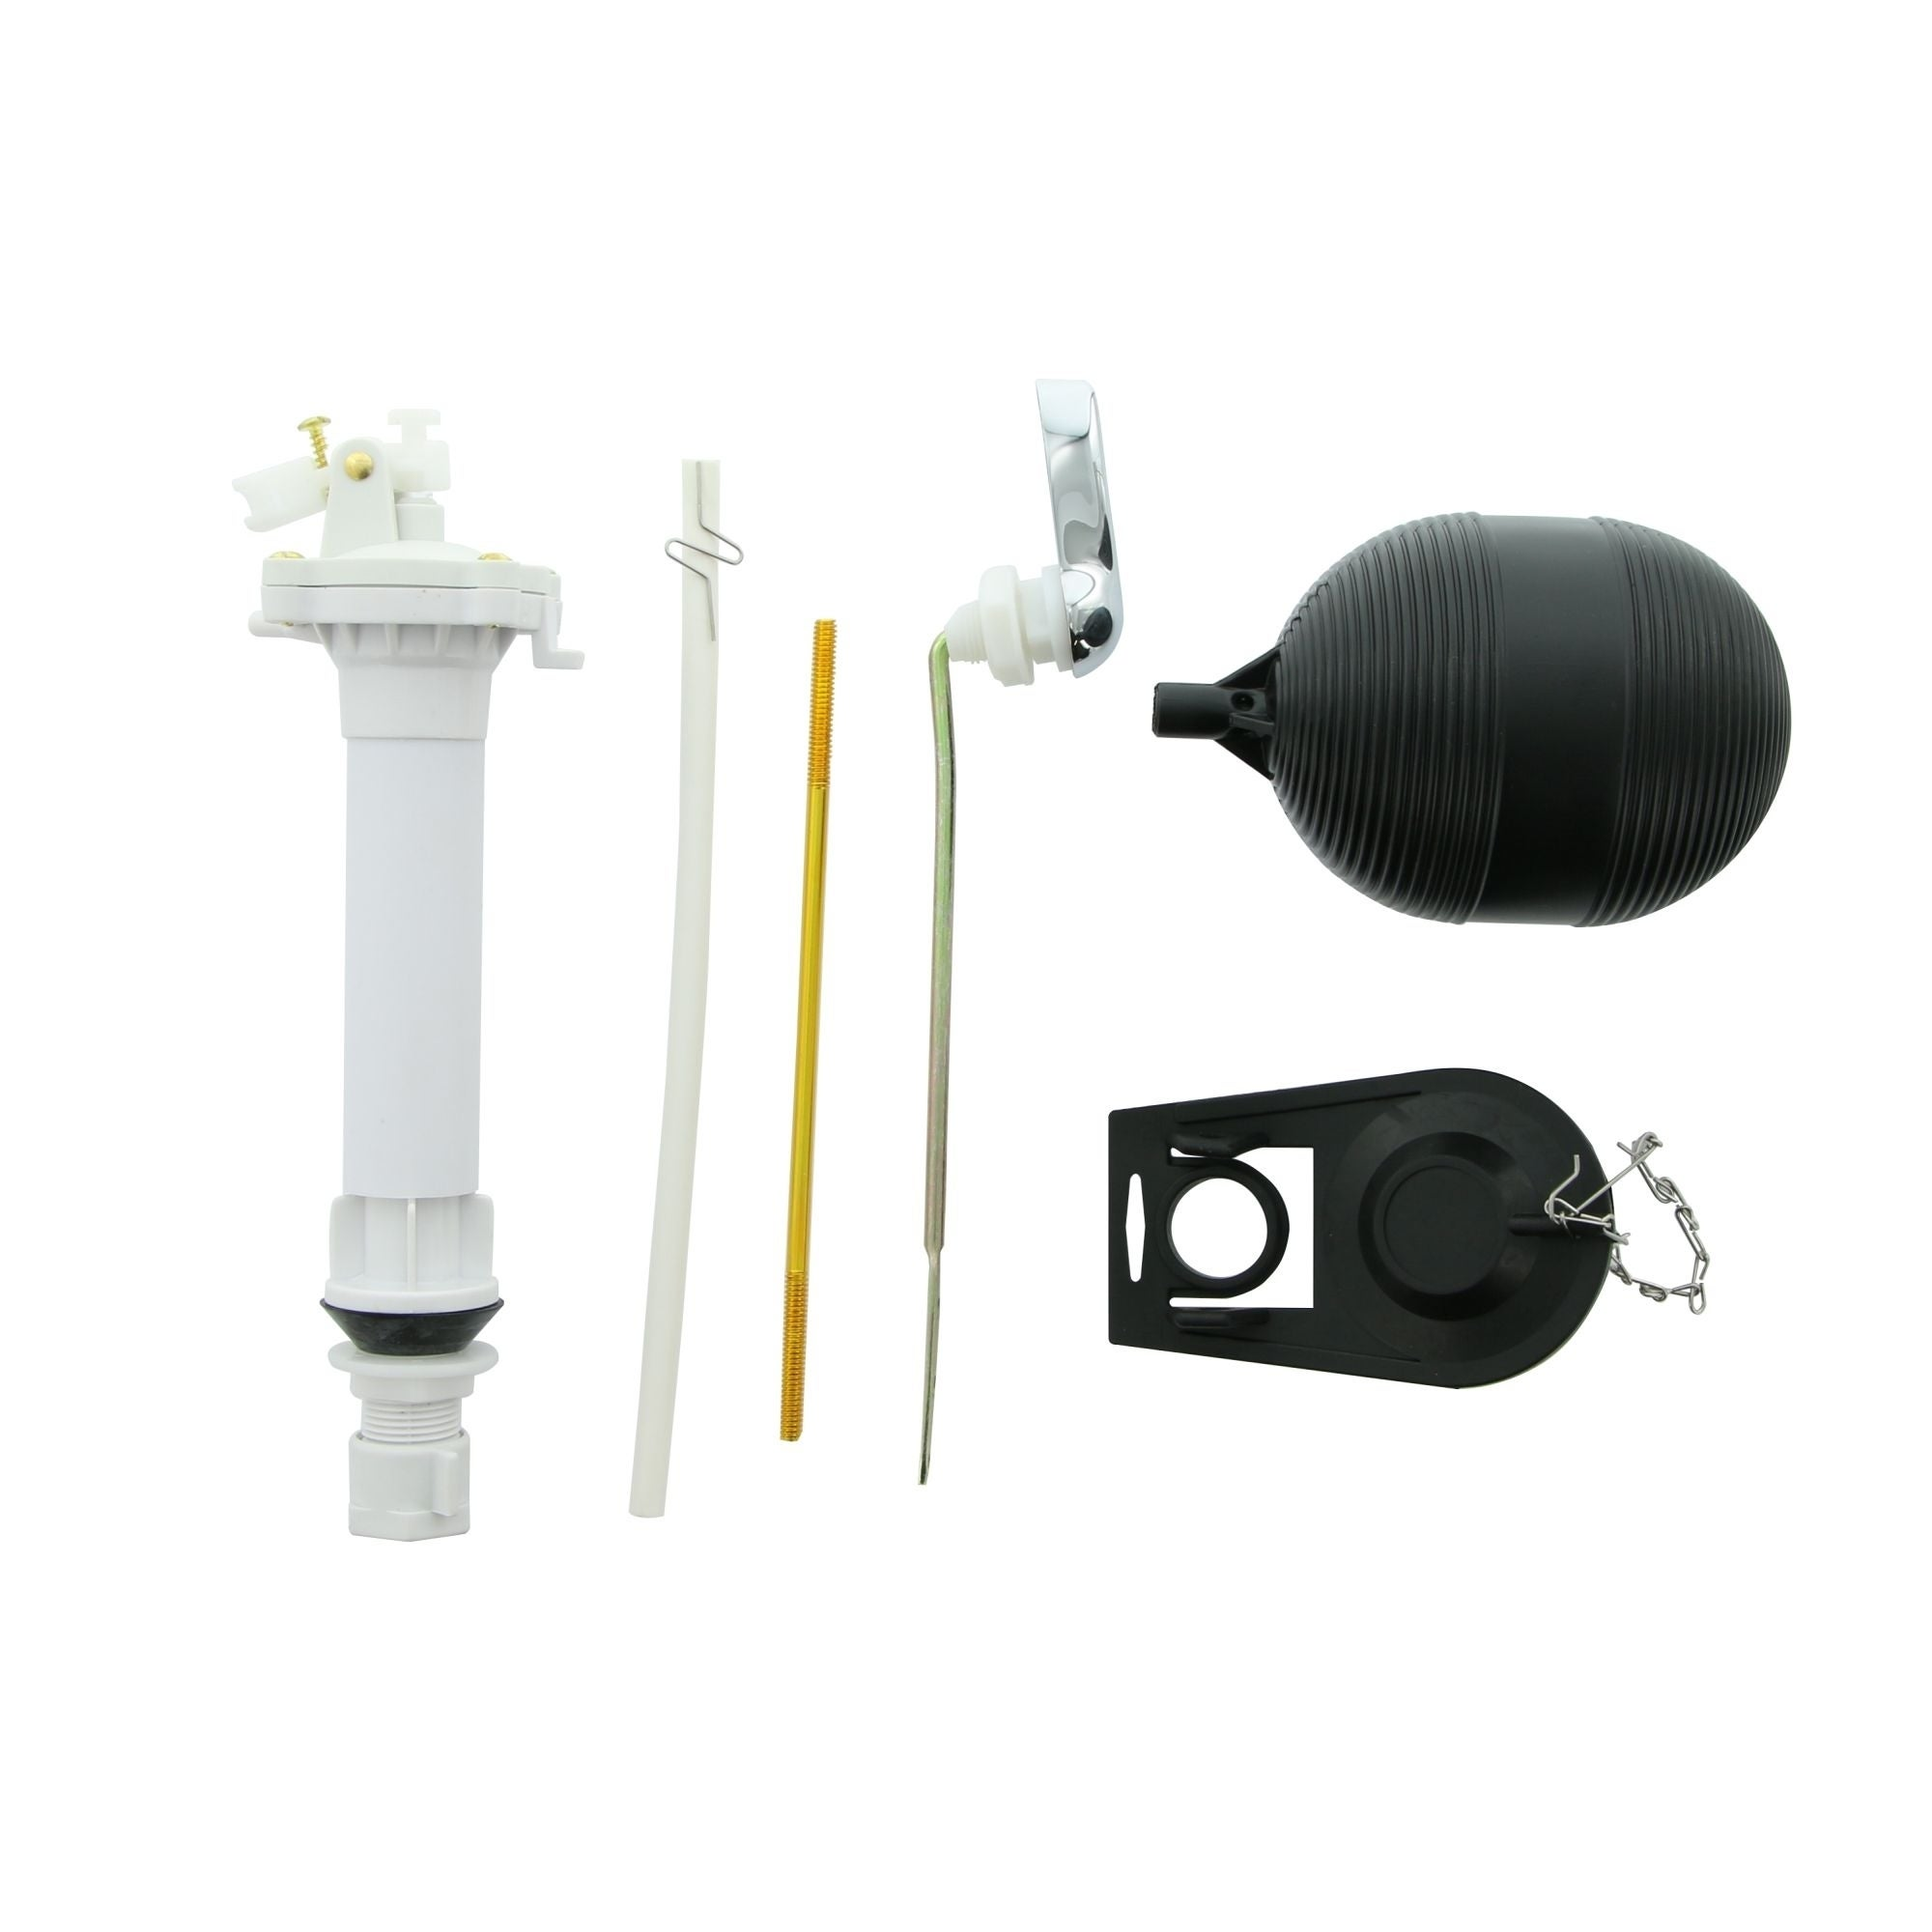 Shop Aquaplumb C2677 Toilet Rebuild Kit For A Complete Toilet Rebuild Includes All Necessary Repair Parts For Most Toilets Overstock 29797286